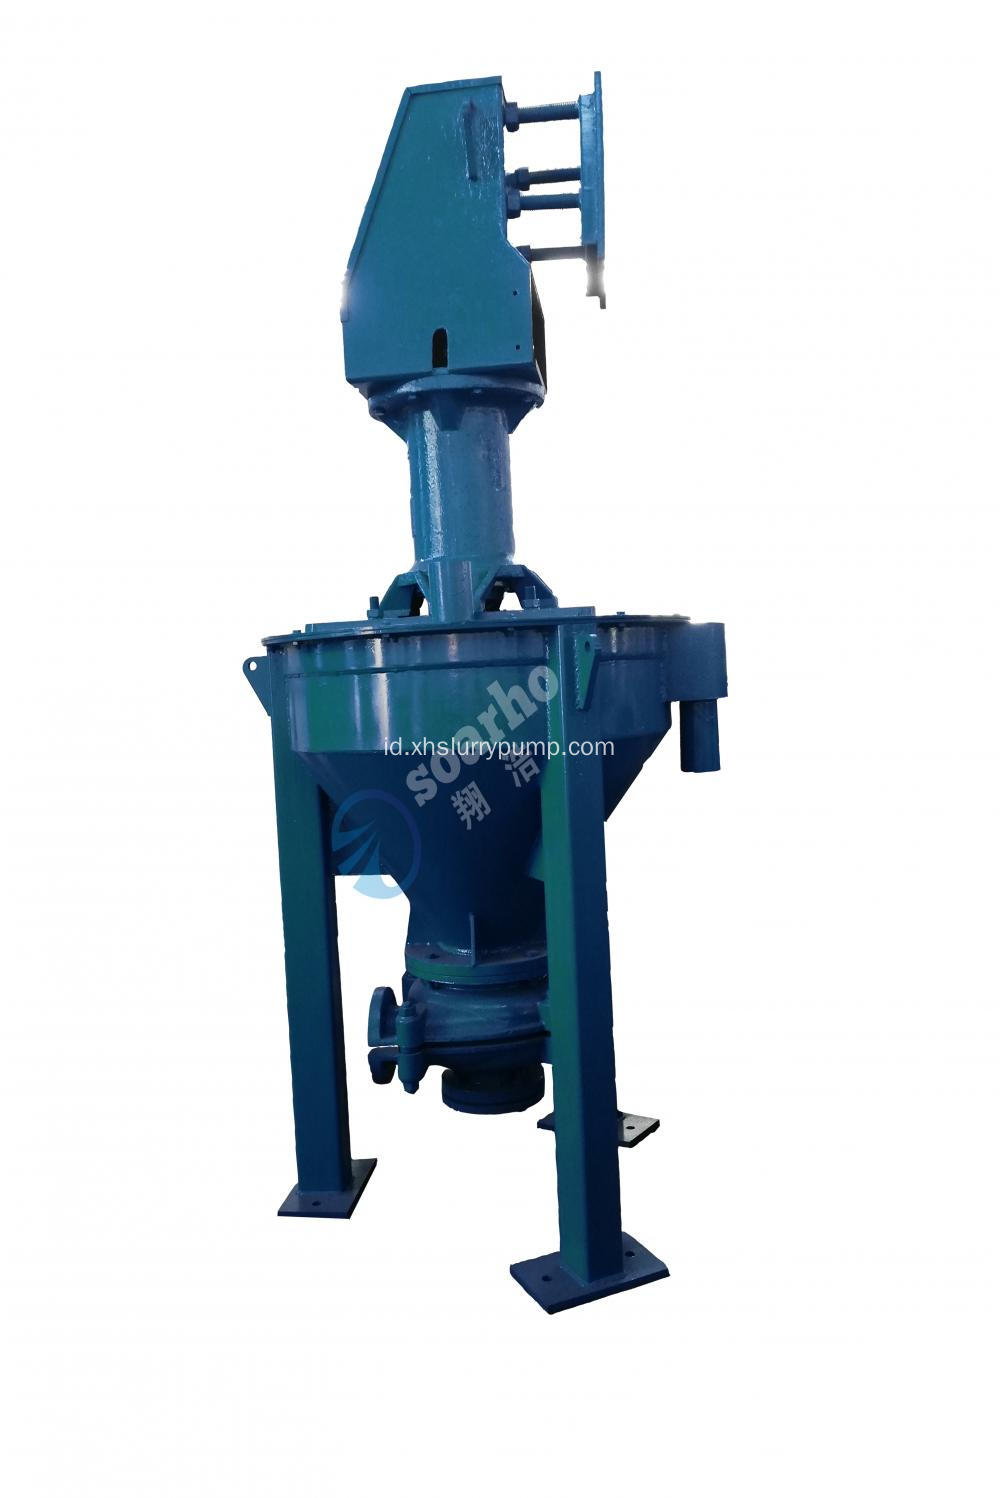 SMAF150 Vertikal Froth Pump